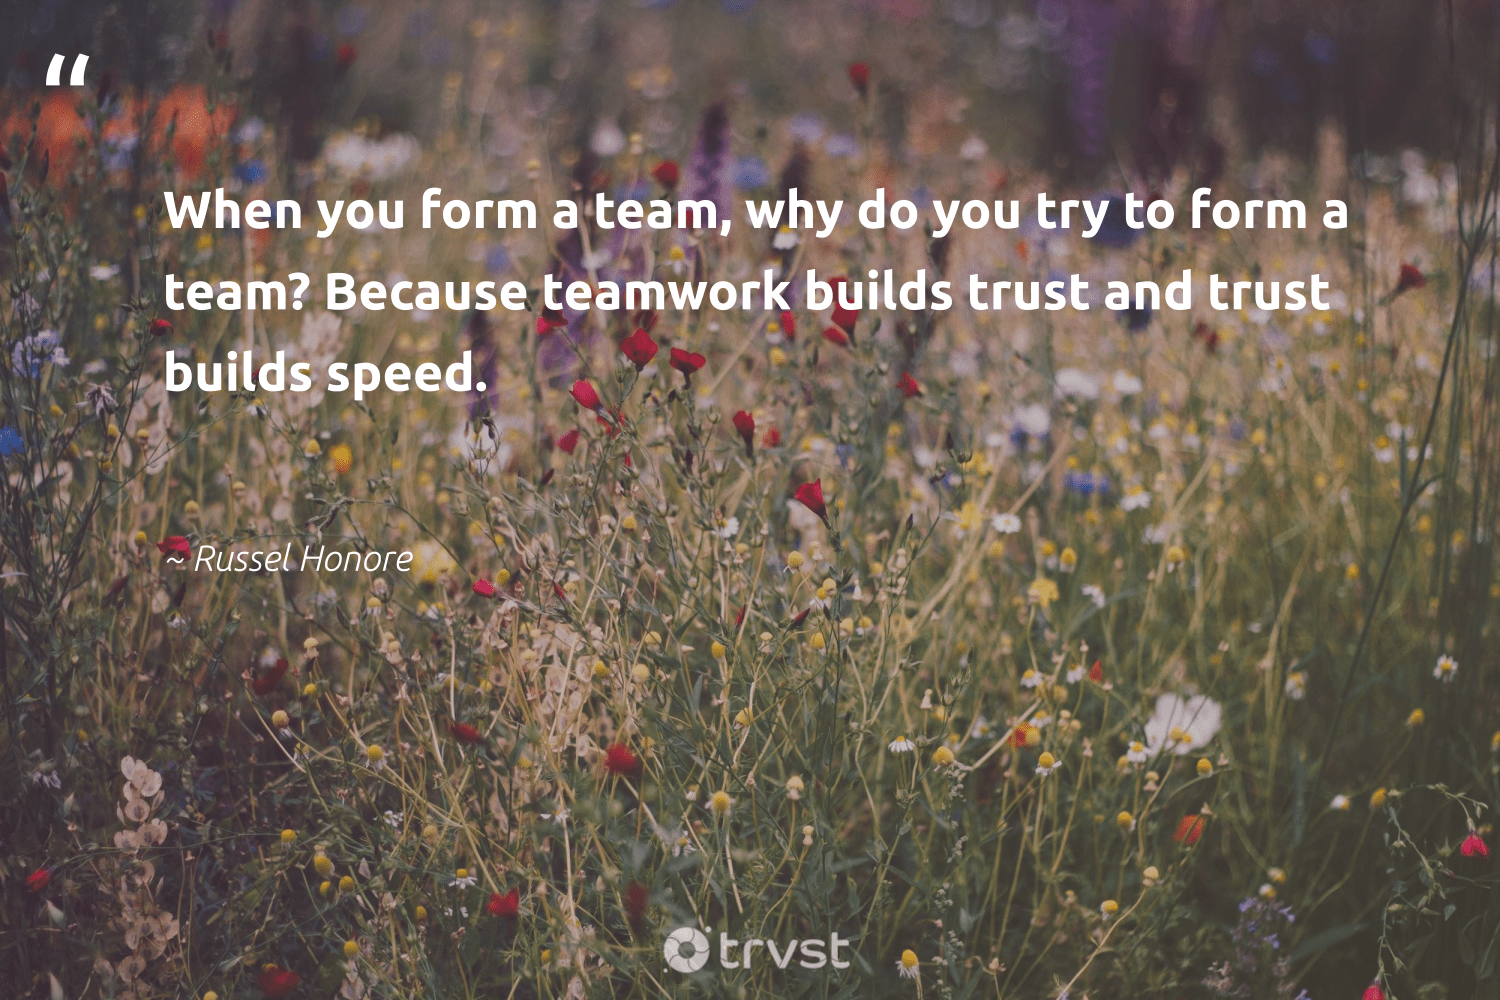 """""""When you form a team, why do you try to form a team? Because teamwork builds trust and trust builds speed.""""  - Russel Honore #trvst #quotes #softskills #collectiveaction #nevergiveup #dogood #futureofwork #planetearthfirst #begreat #dotherightthing #dosomething #socialimpact"""